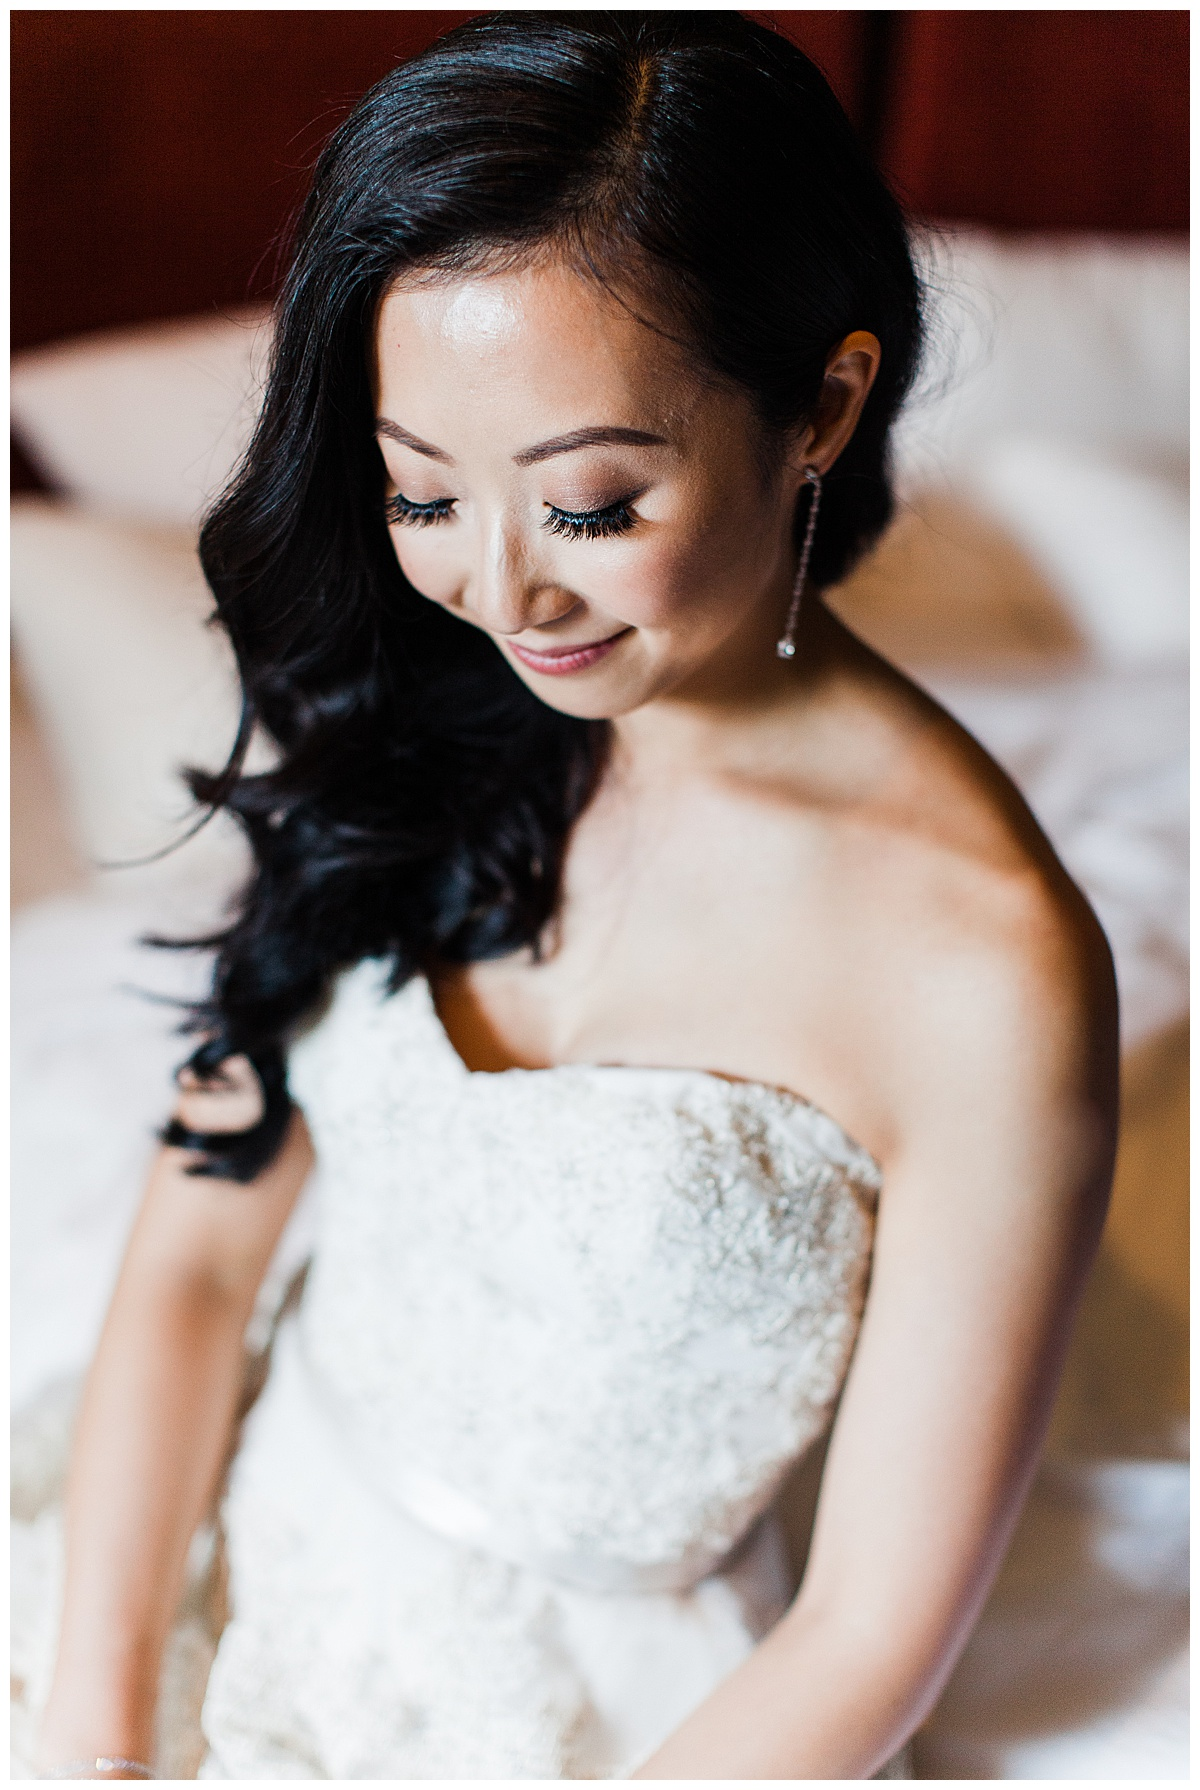 Bride looking down showing off bridal makeup and tear drop earring| winery wedding| Asian bride| Toronto photographer| 3photography